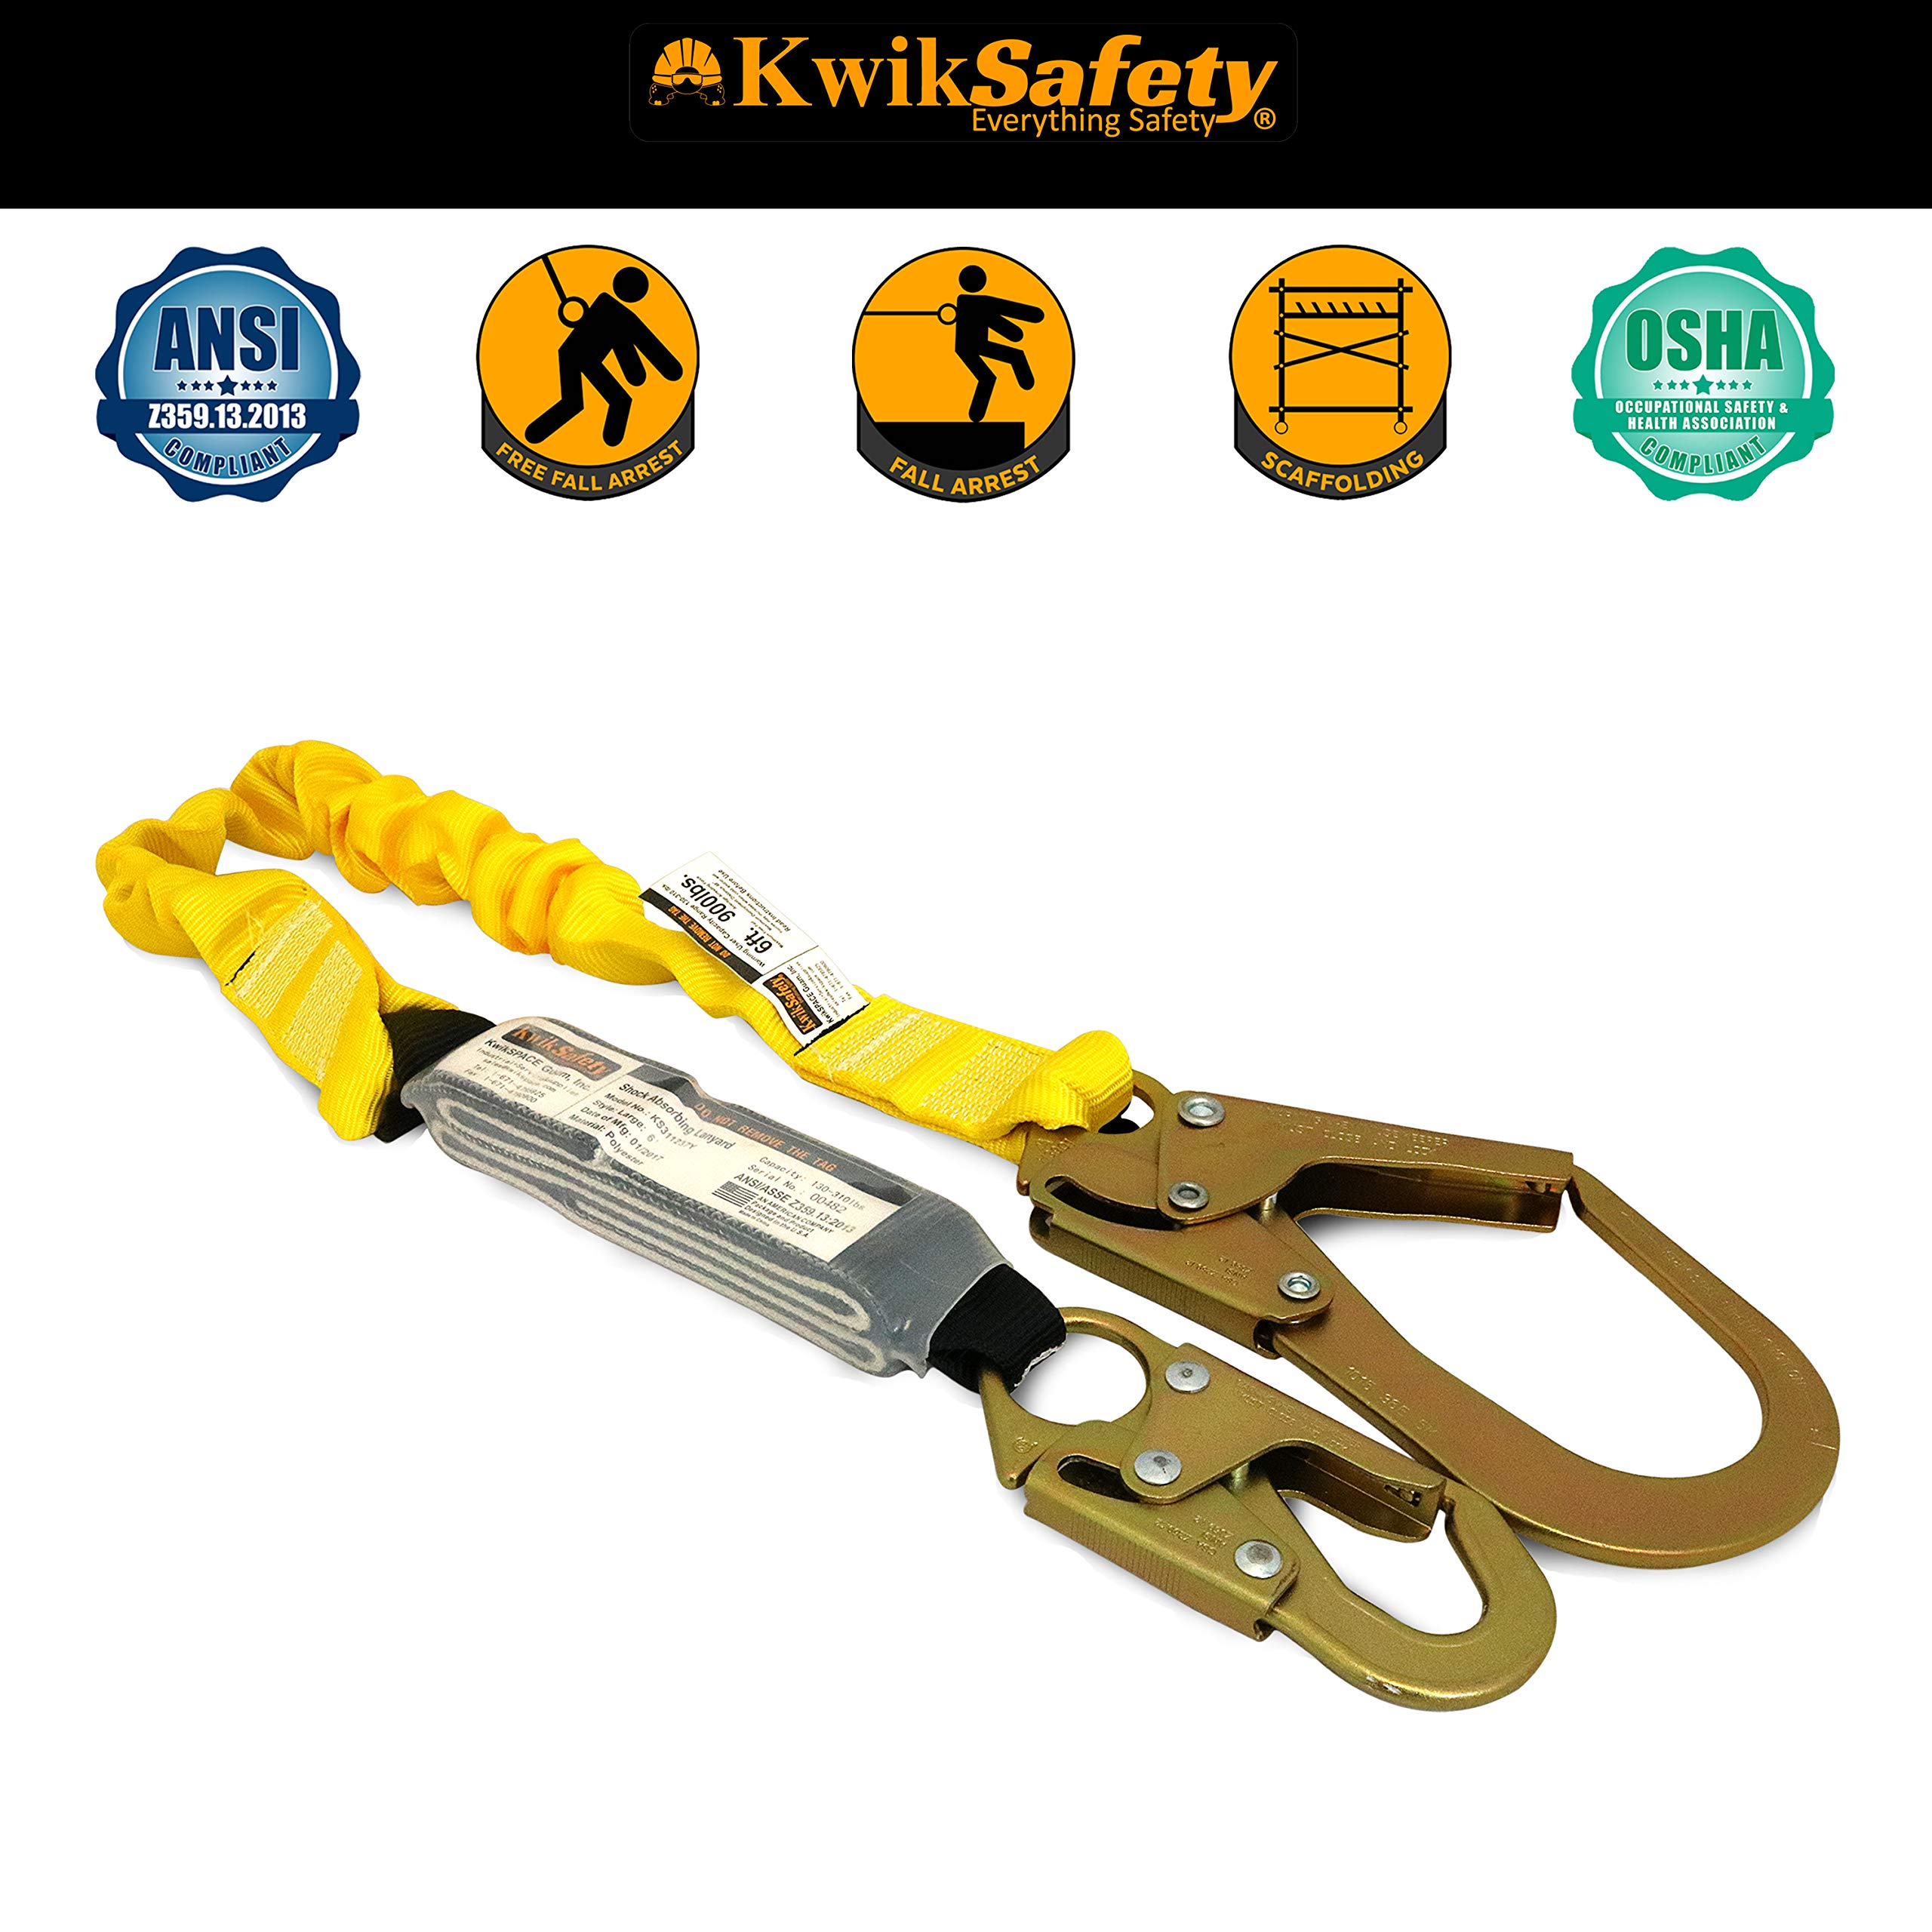 KwikSafety (Charlotte, NC) BOA 4 PACK (External Shock Absorber) Single Leg 6ft Safety Lanyard OSHA ANSI Fall Protection Restraint Equipment Snap Rebar Hook Connectors Construction Arborist Roofing by KwikSafety (Image #2)